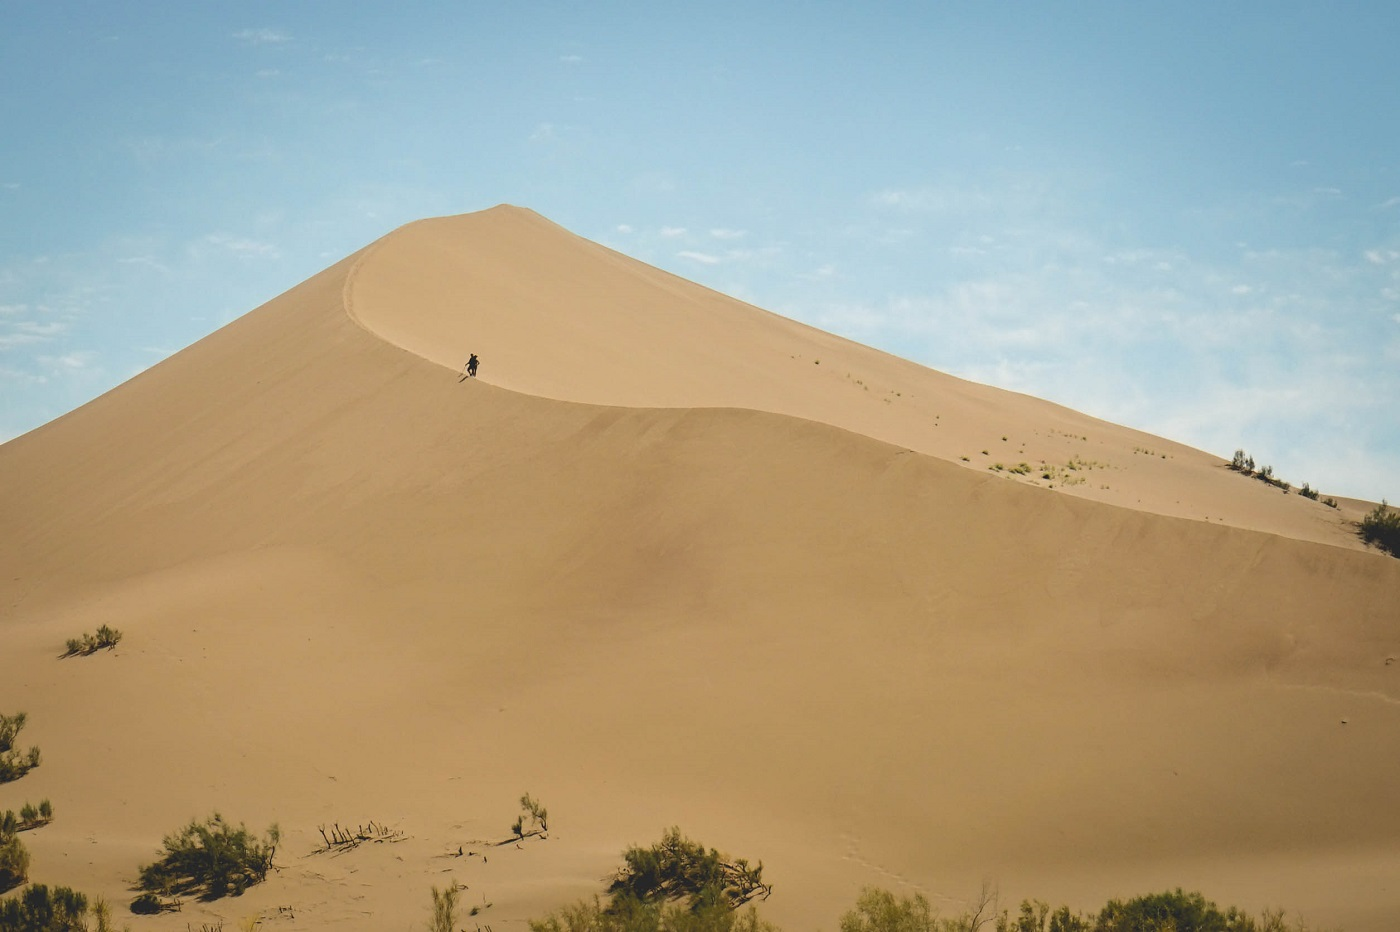 DariusRoby.com - Basshi, the entrance to the Altyn Emel National Park & the singing dunes.